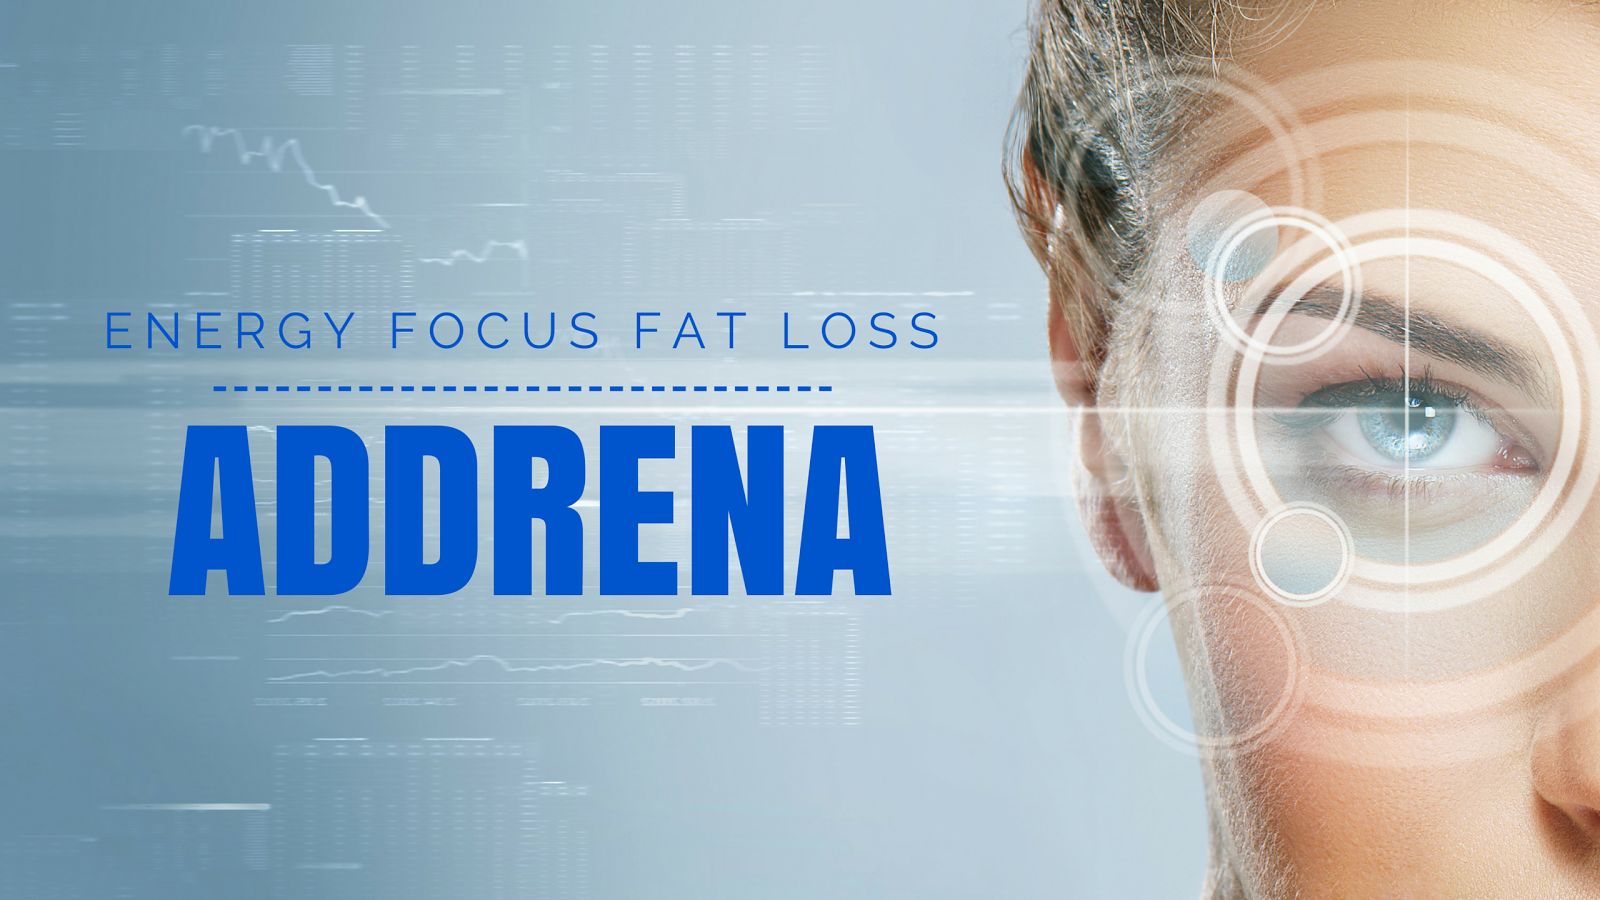 Addrena Review Where To Buy, Side Effects, And Ingredients